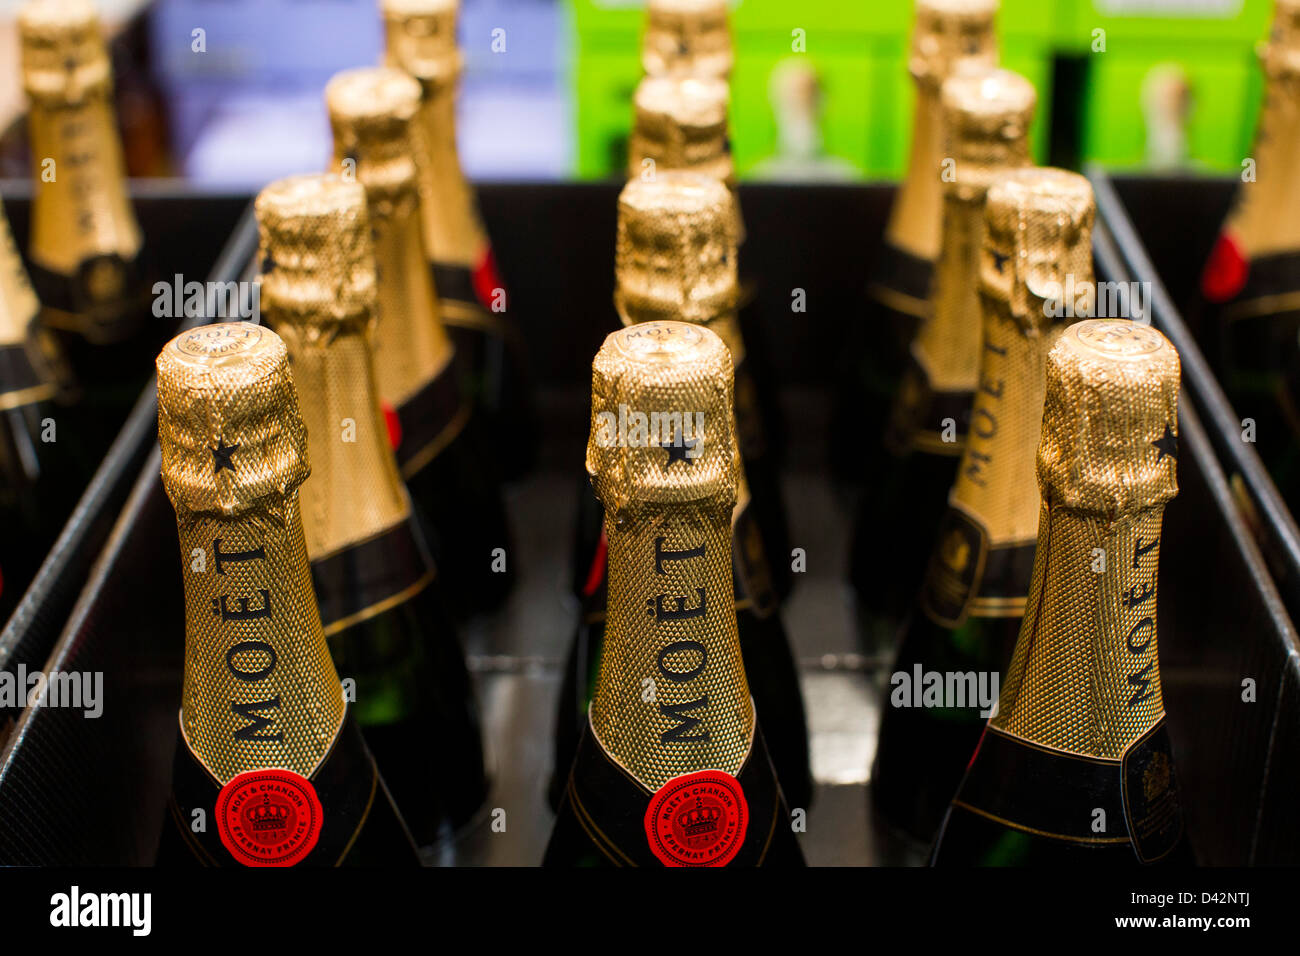 Moet champagne on display at a costco wholesale warehouse club stock moet champagne on display at a costco wholesale warehouse club stock photo 54150786 alamy thecheapjerseys Images